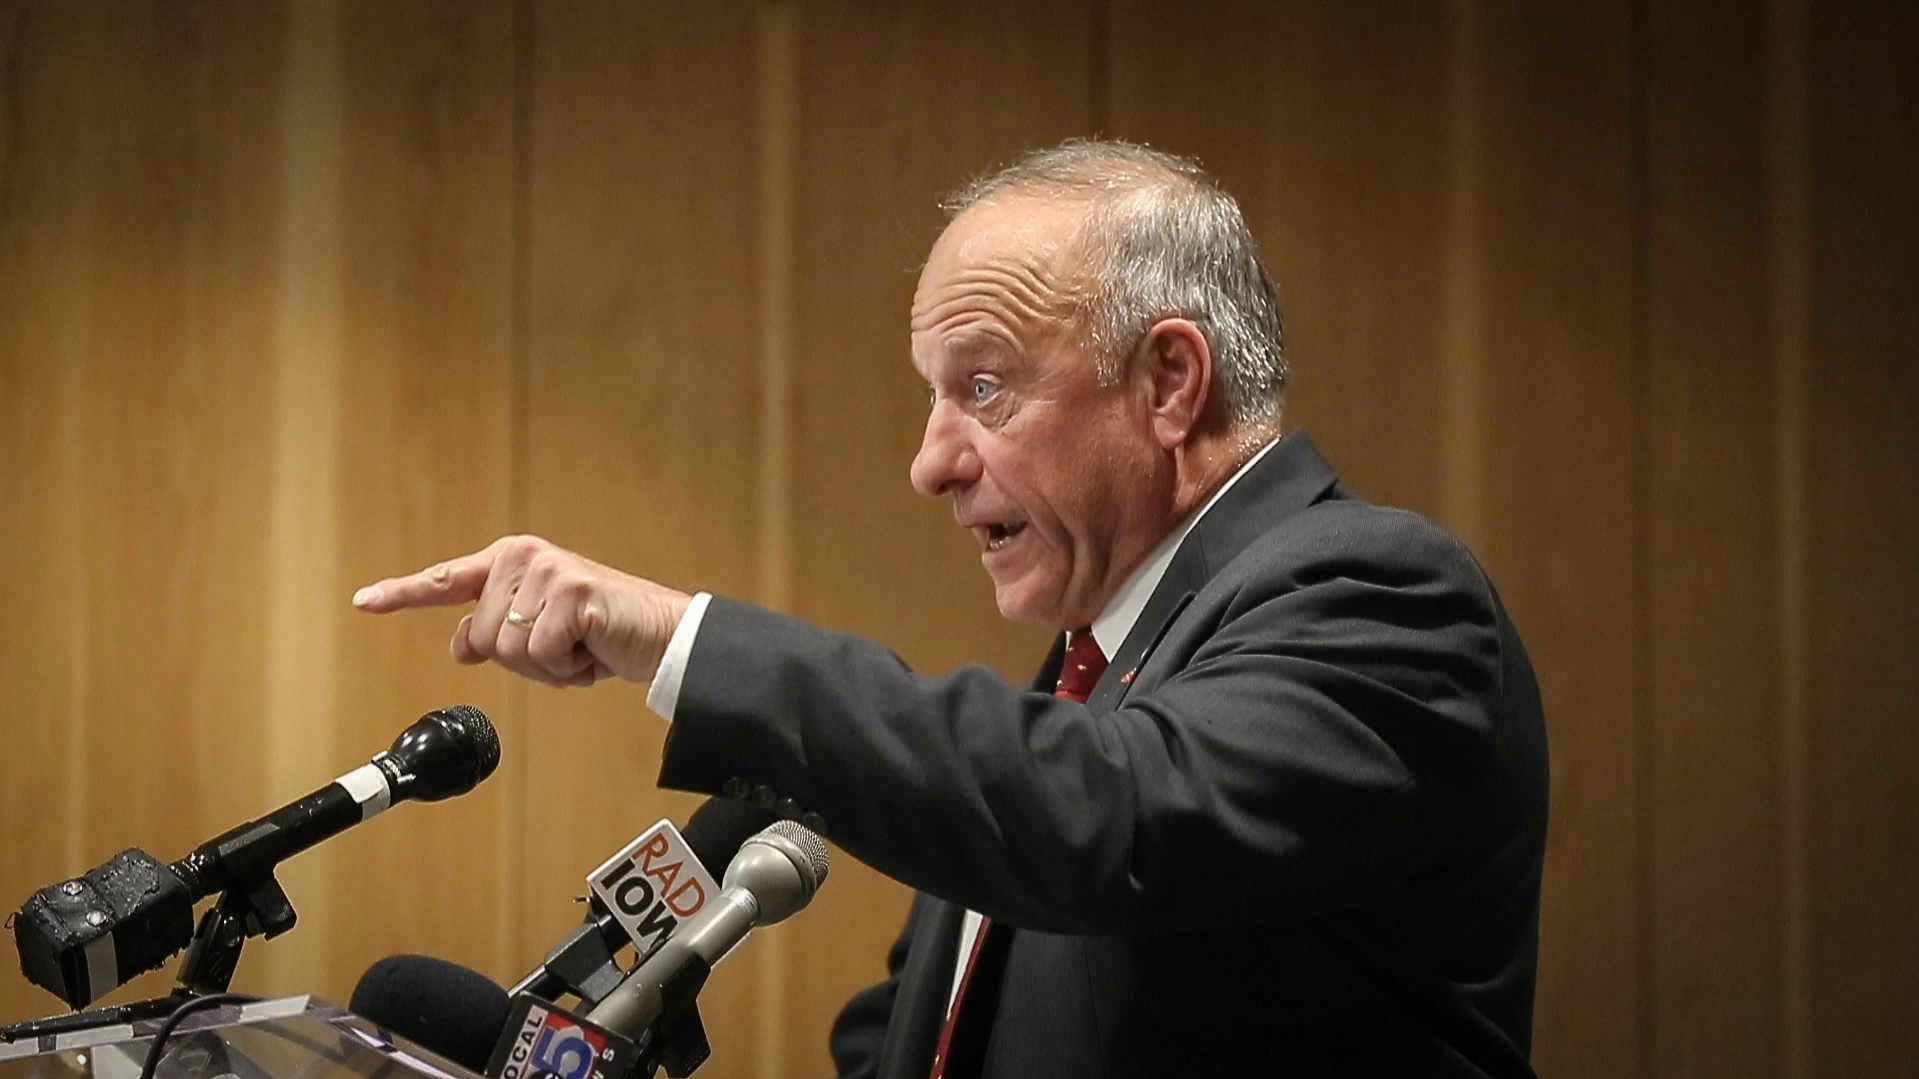 Iowa Gov. Kim Reynolds bluntly tells Steve King to decide future amid racism allegations